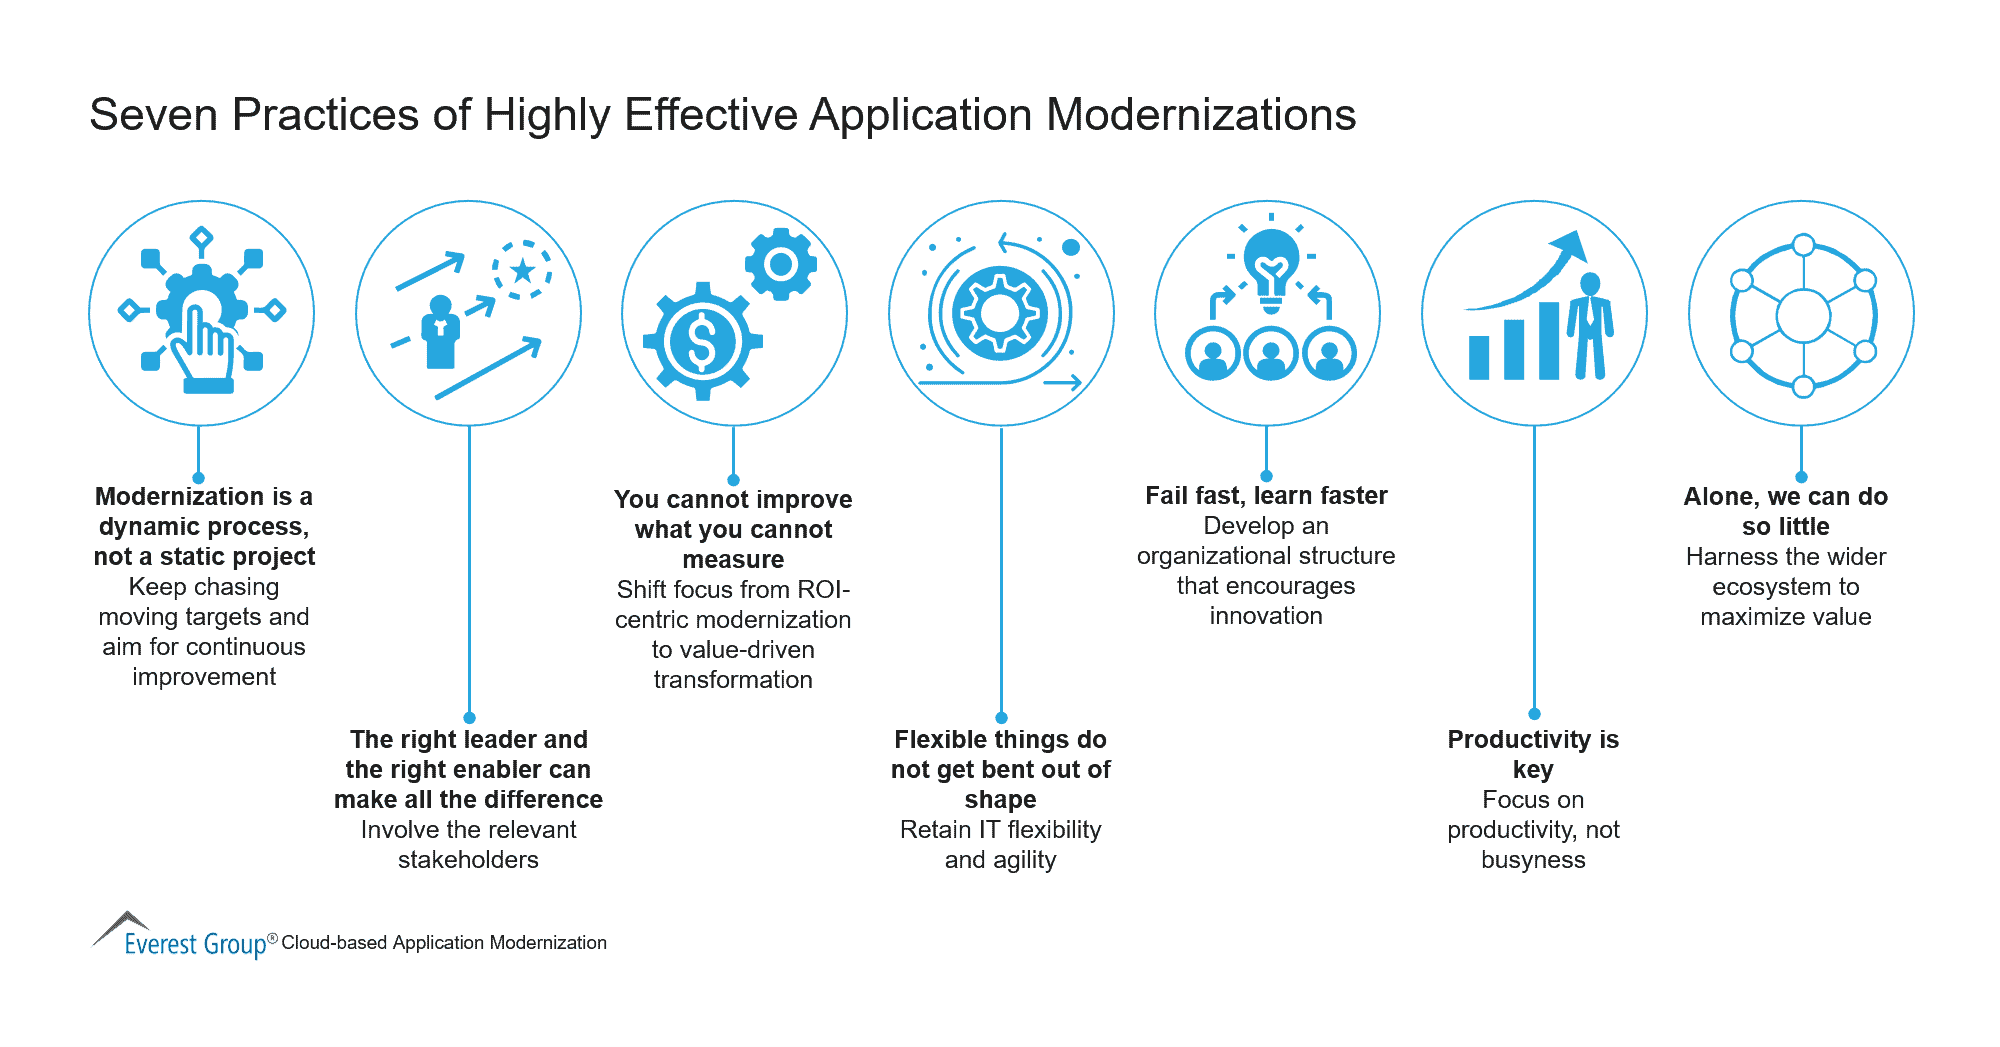 Seven Practices of Highly Effective Application Modernizations